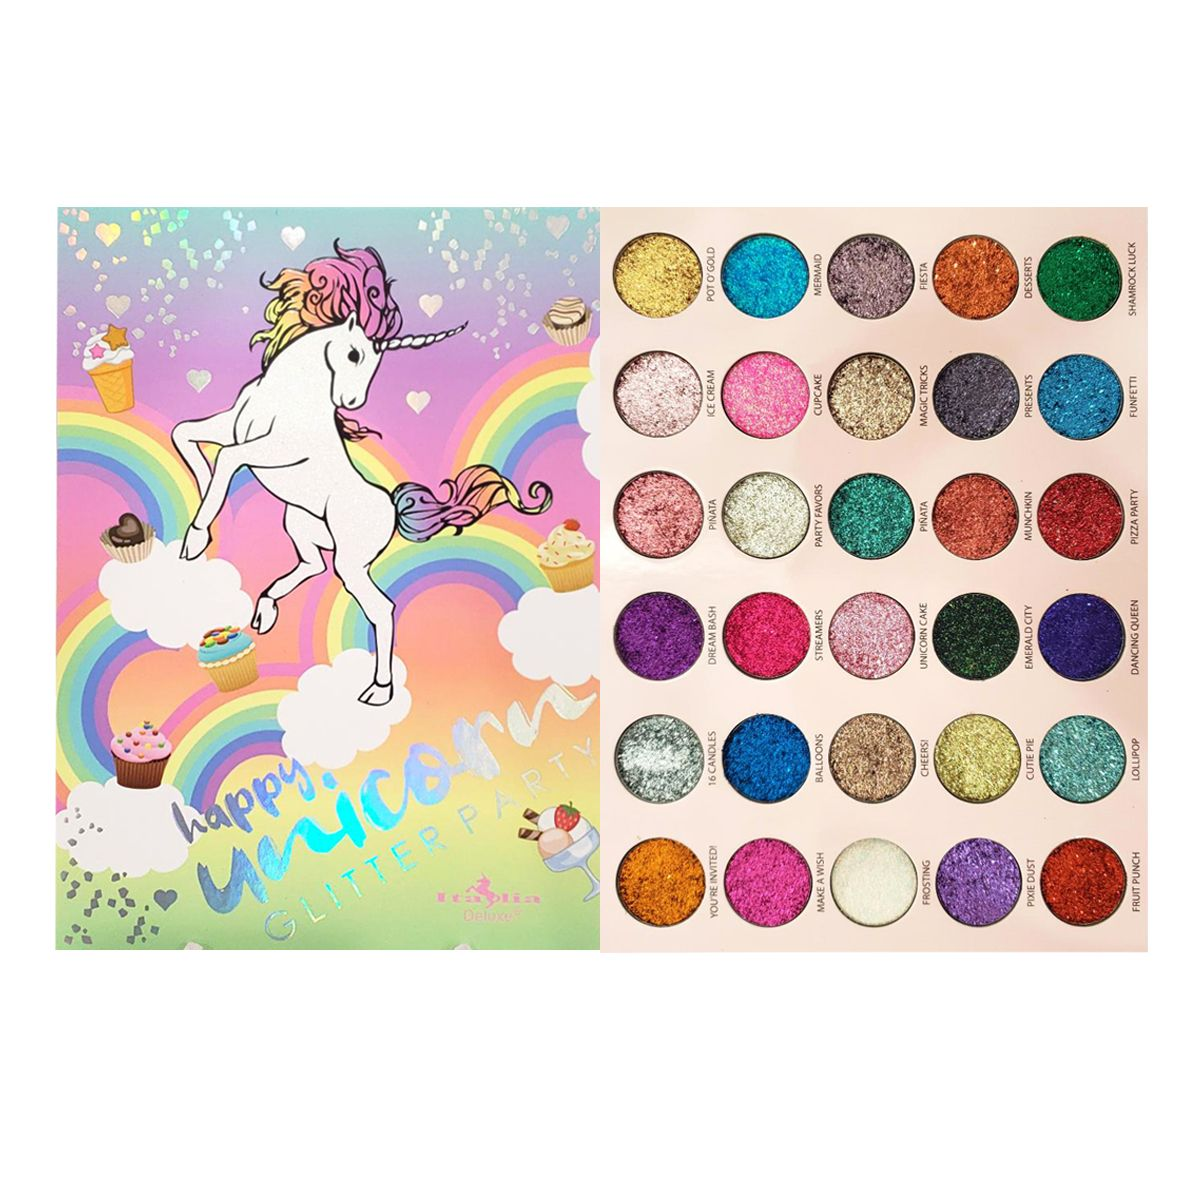 ITA-2030UGP : Happy, Unicorn Glitter Party Palette 6 PC